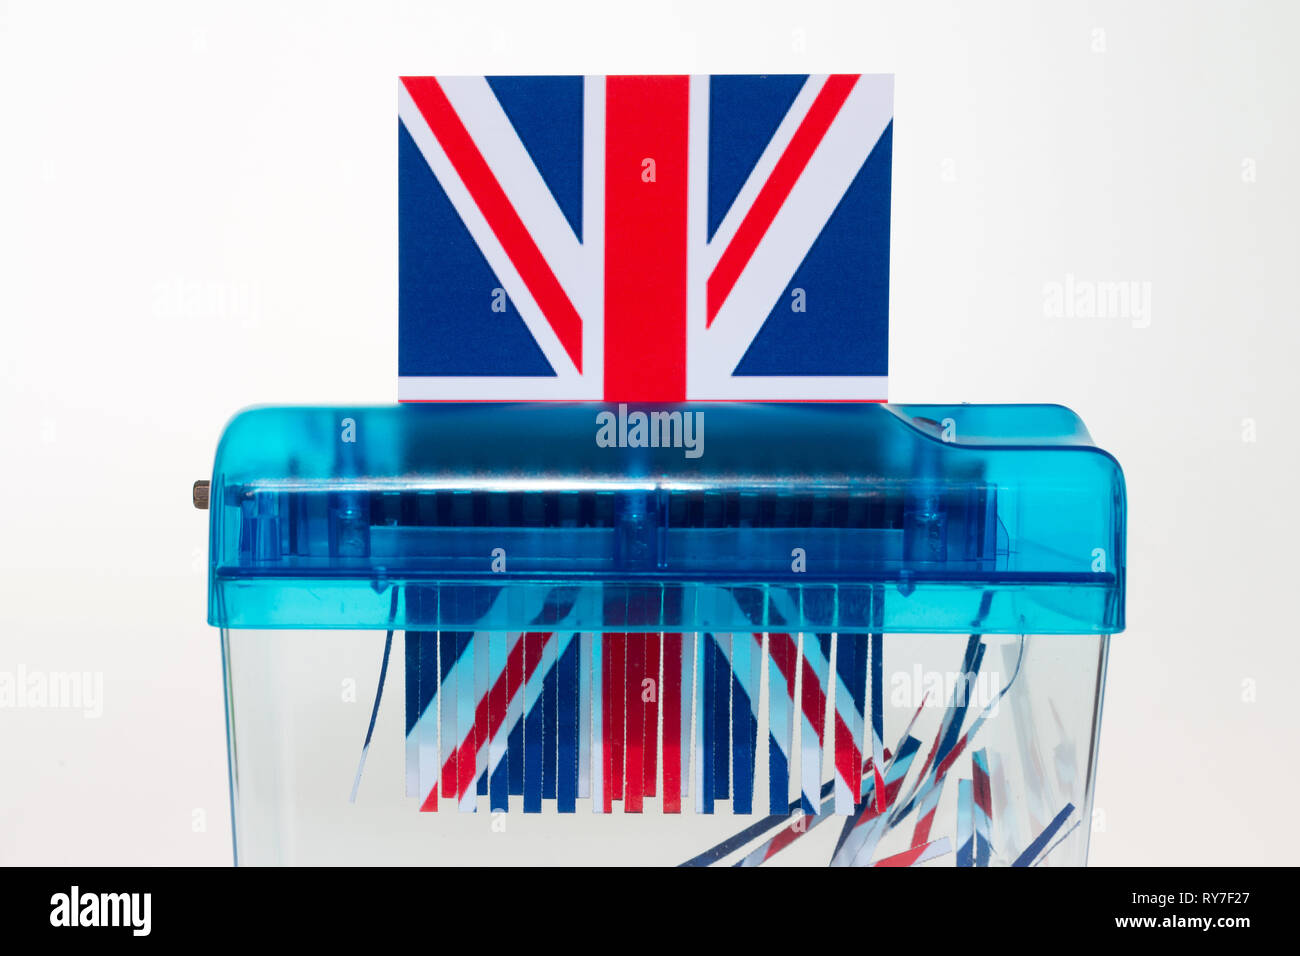 Union Jack in the shredder. - Stock Image